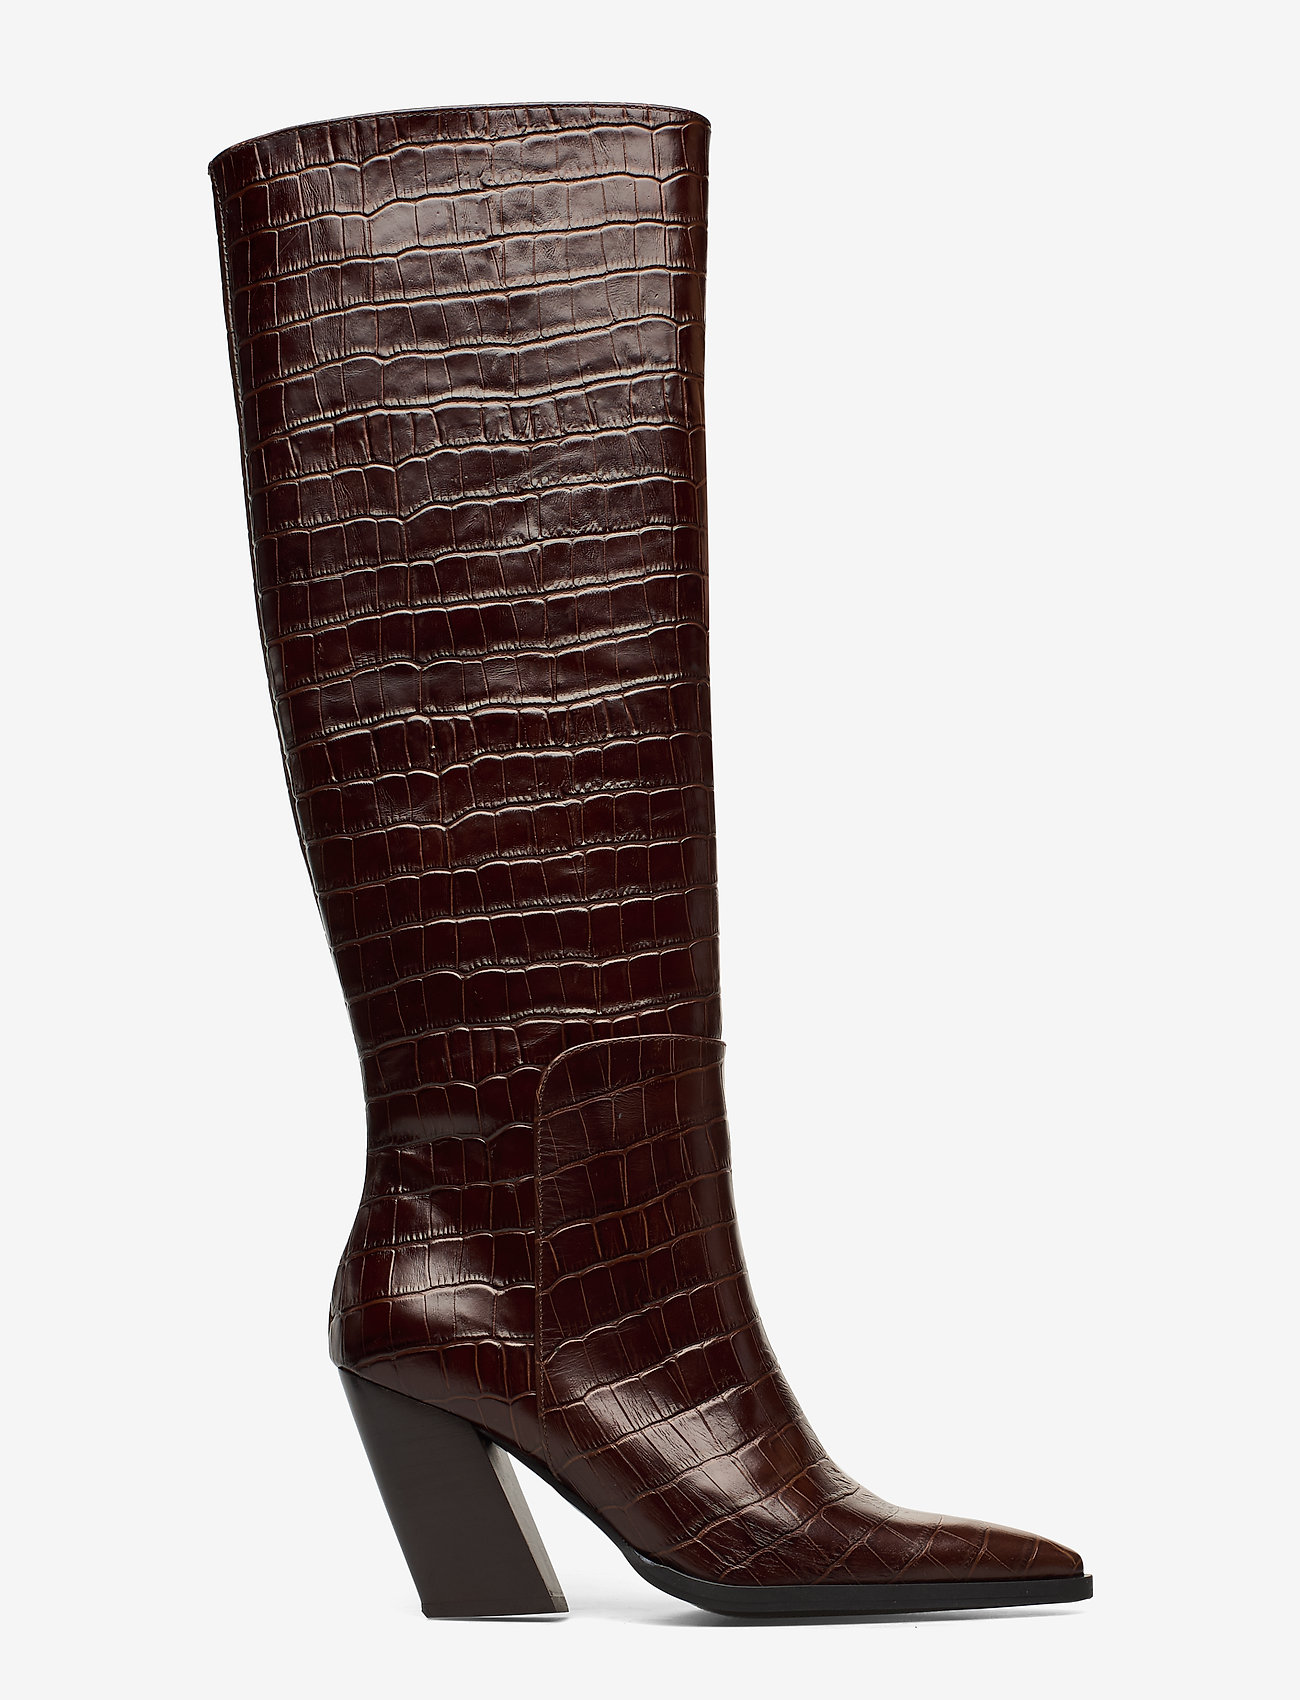 ANNY NORD - ESCAPE FROM THE WEST Tall Boot - lange laarzen - brown croc - 1